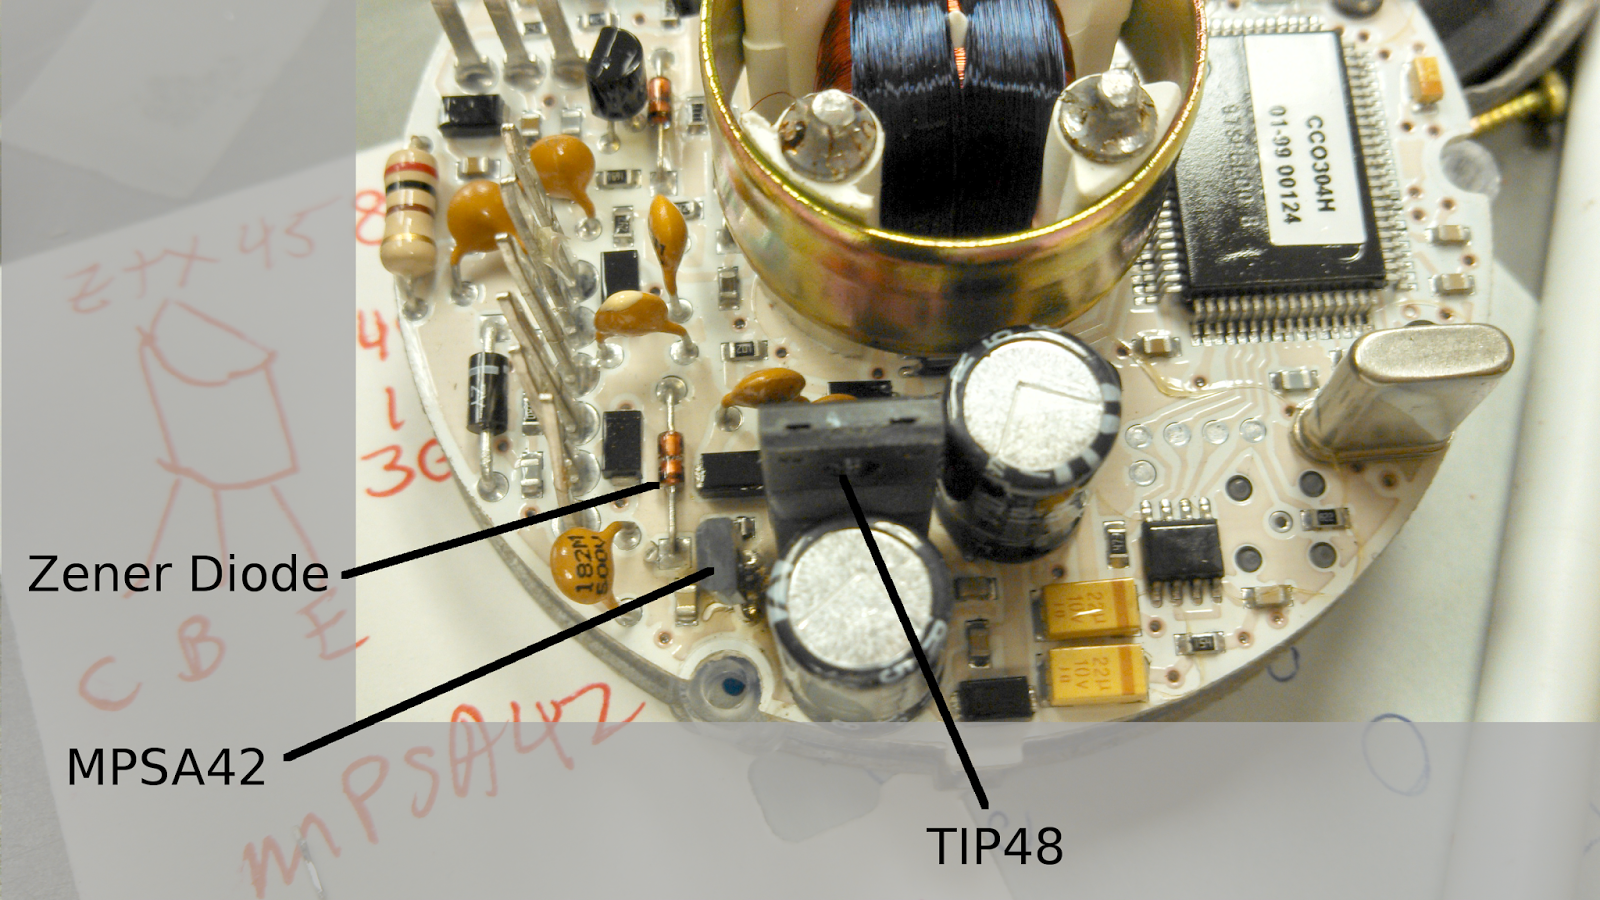 medium resolution of figure 4 location of the likely bad part s when i took this picture i had already replaced the tip48 and the mpsa42 but not the zener diode